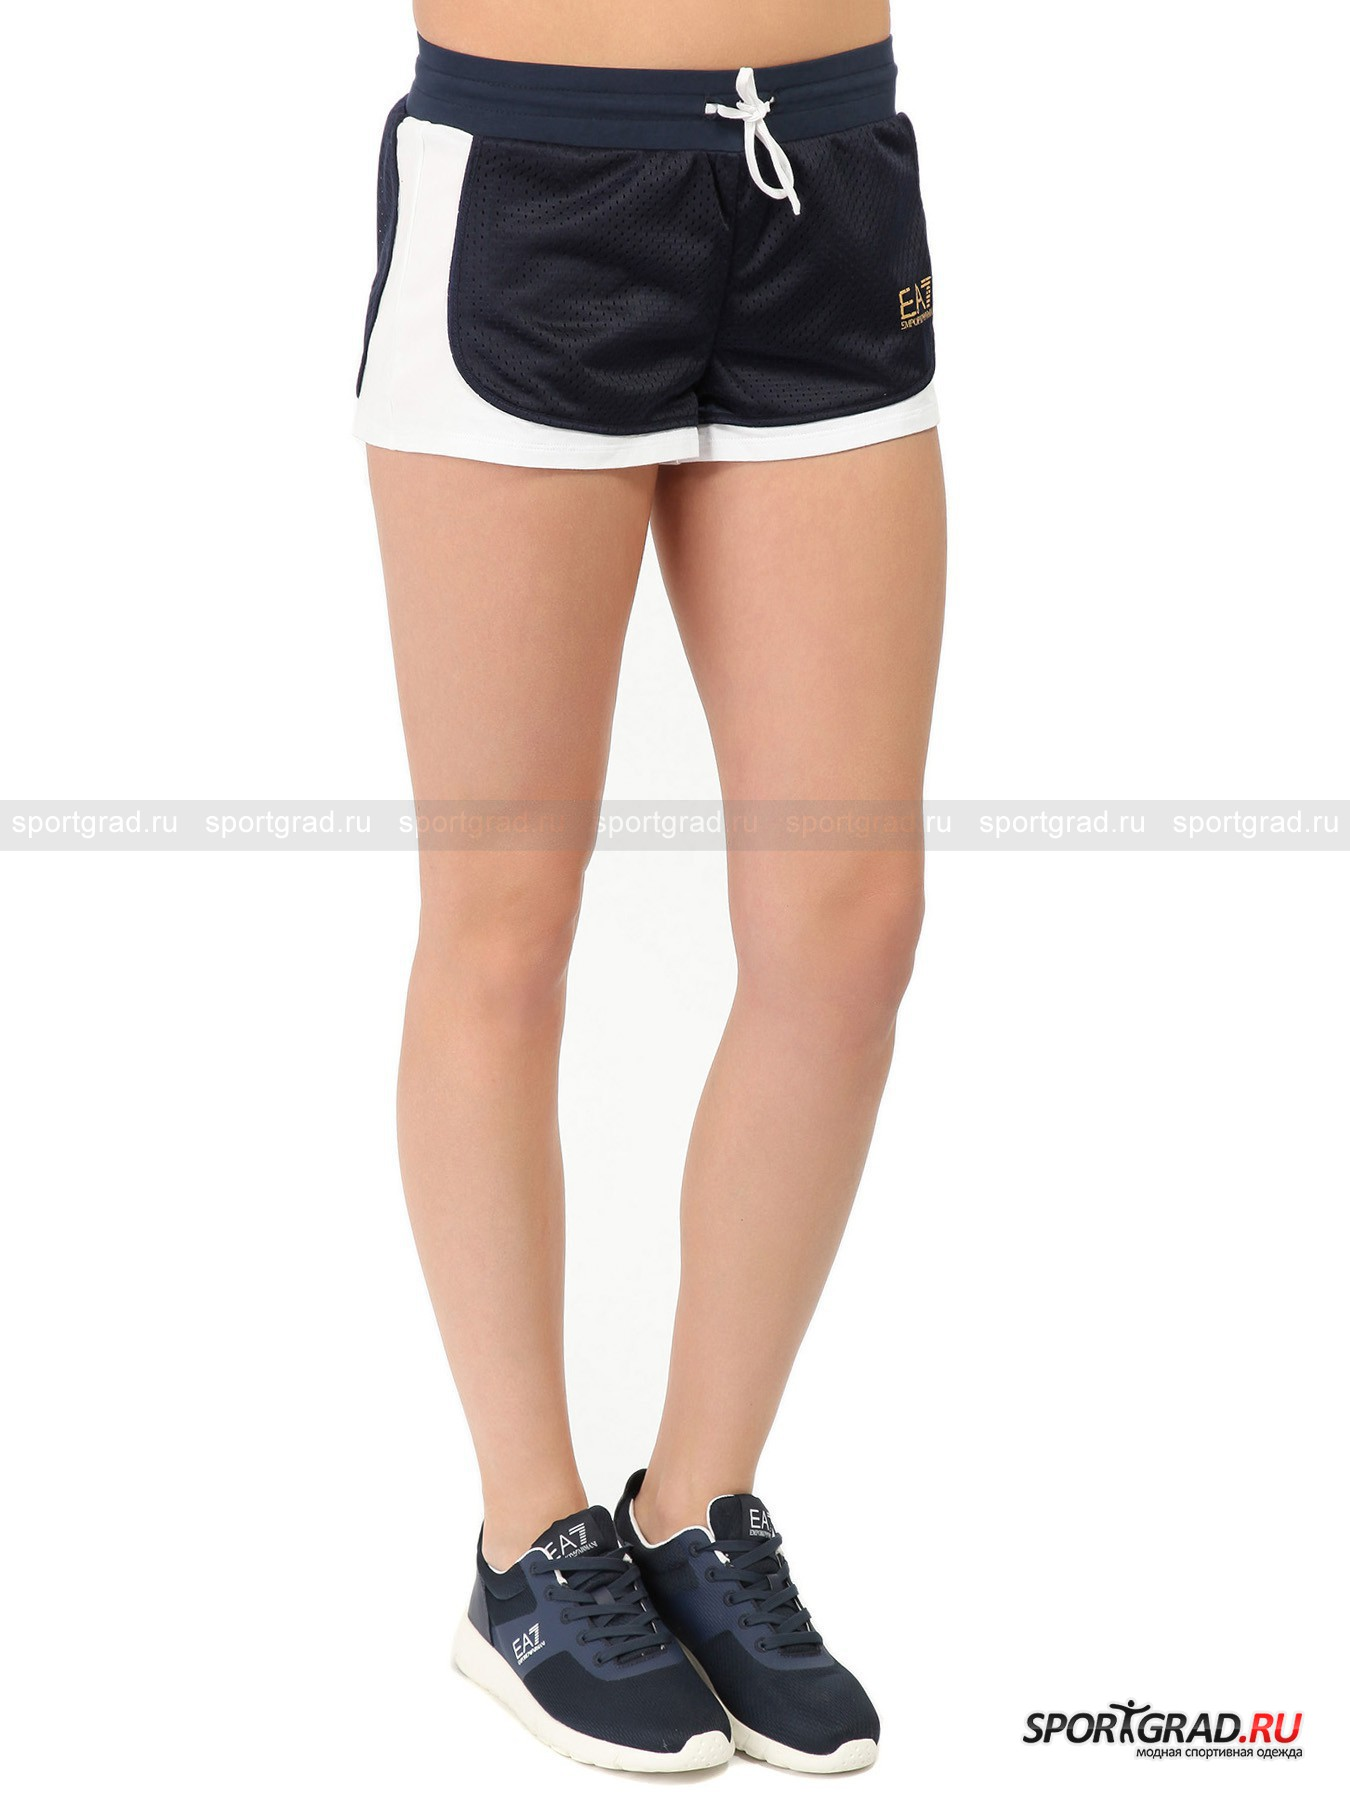 Шорты женские Train Varsity College Shorts EA7 Emporio Armani от Спортград